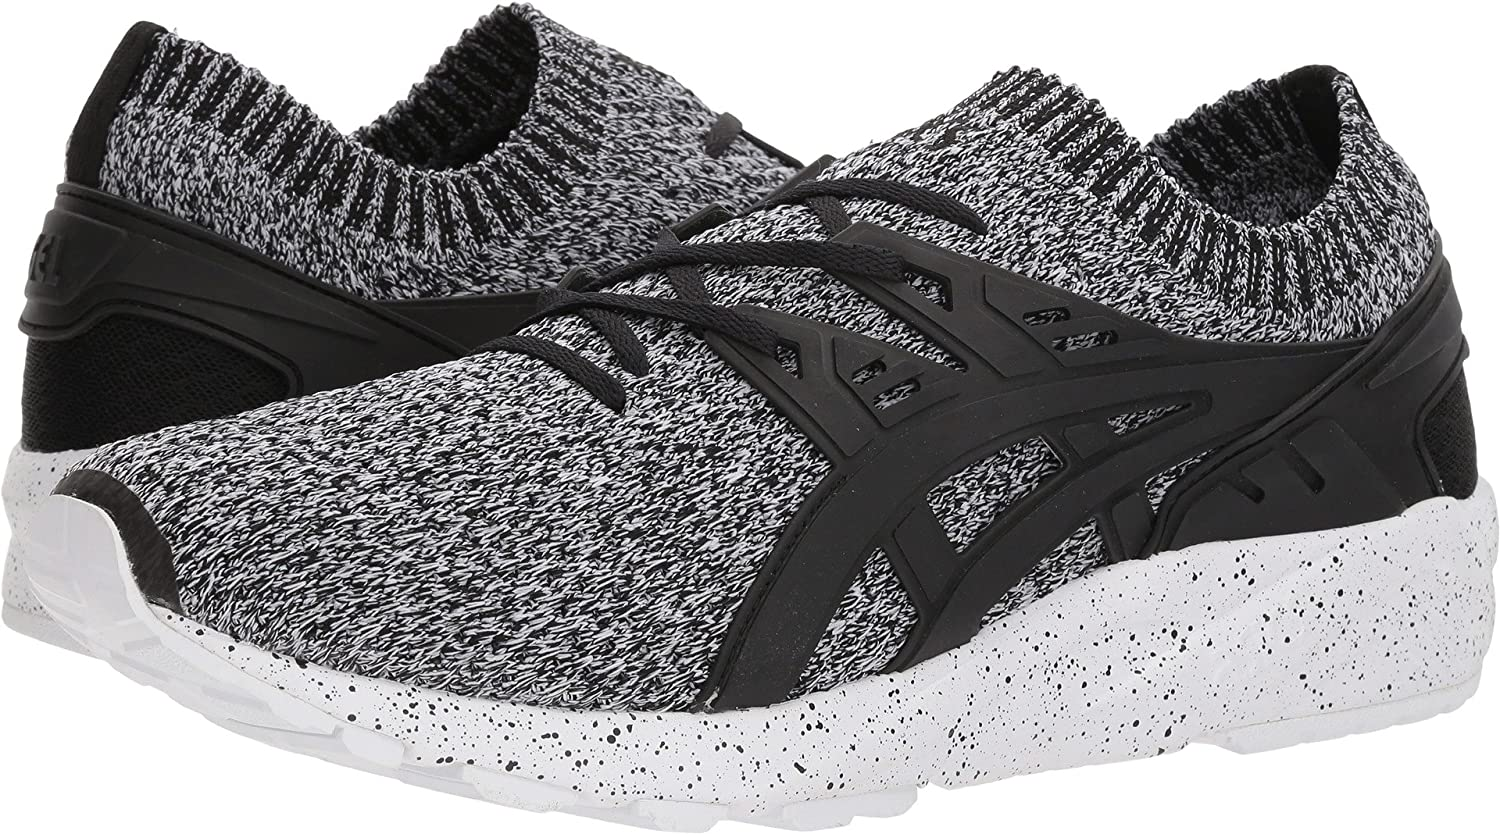 ASICS Mens Gel-Kayano Trainer Knit Training Casual Shoes,